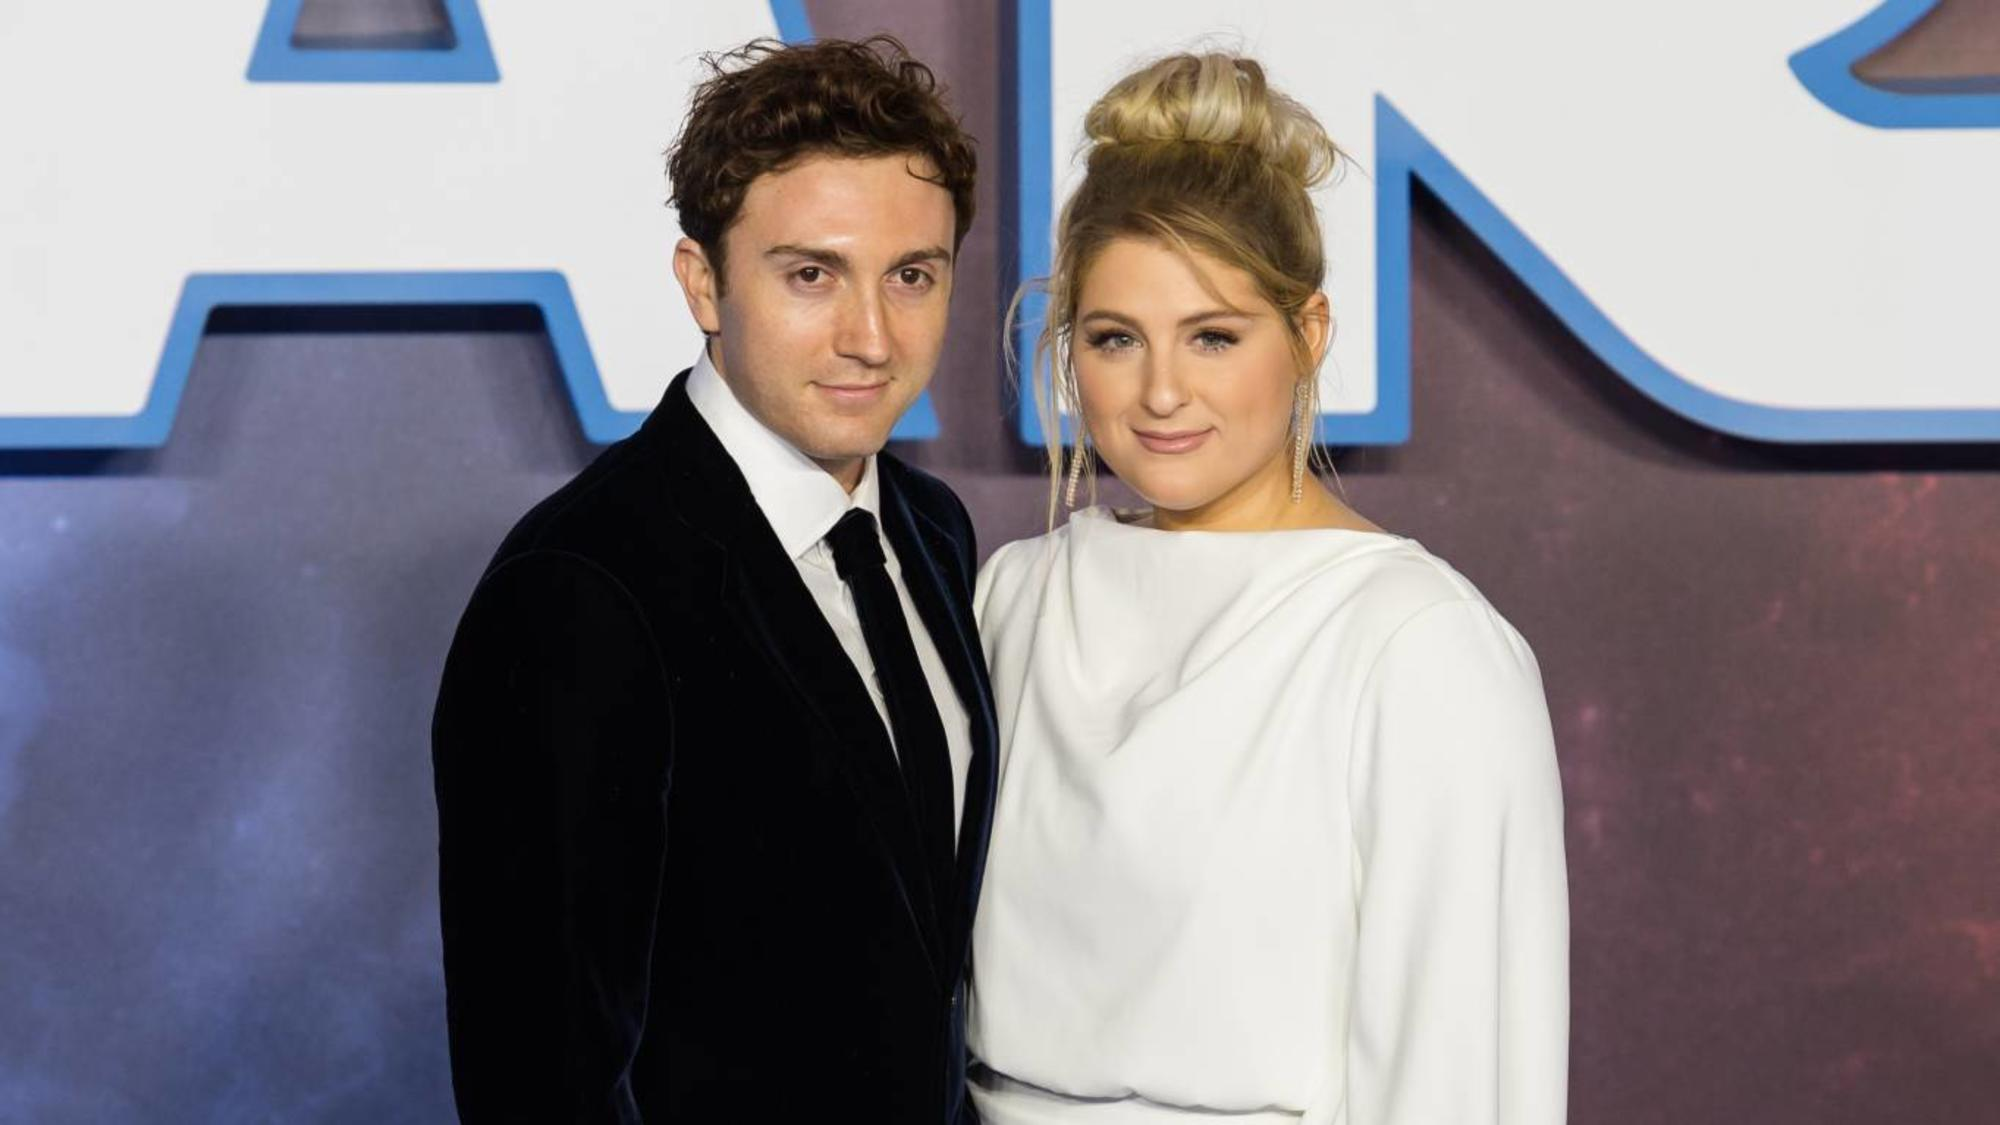 daryl-sabara-meghan-trainor-premier-the-rise-of-skywalker